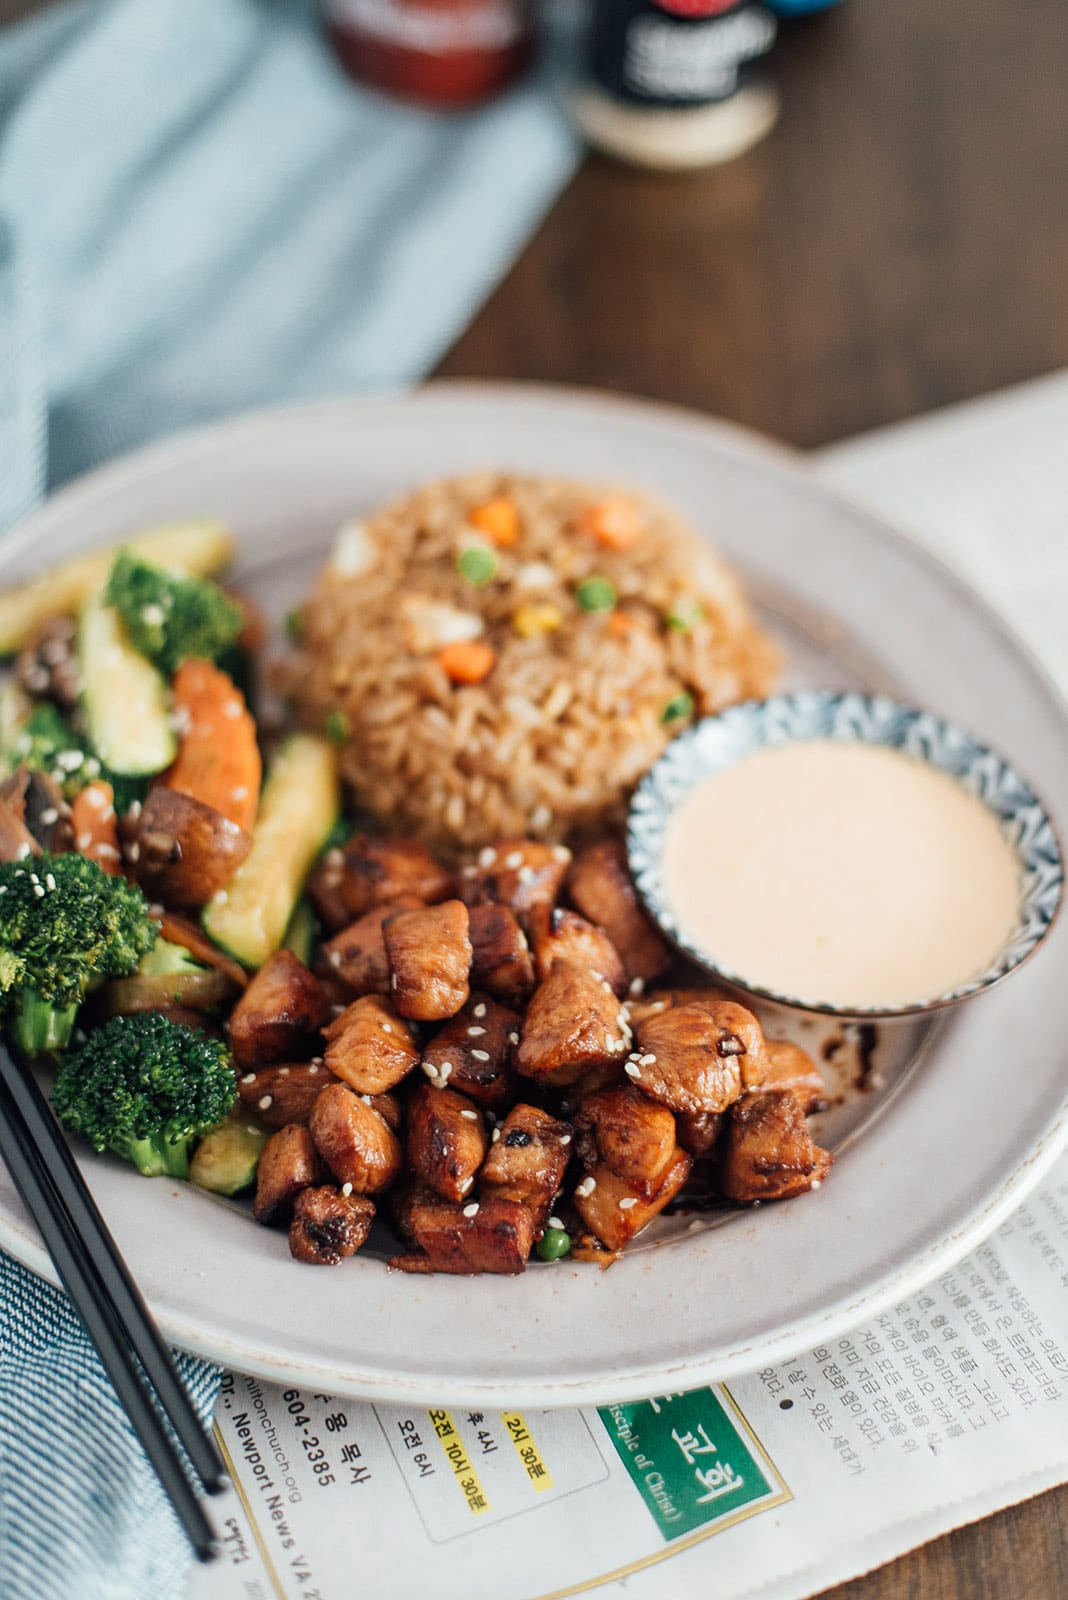 Hibachi rice, chicken and veggies on a white plate with some yum yum sauce on the side.